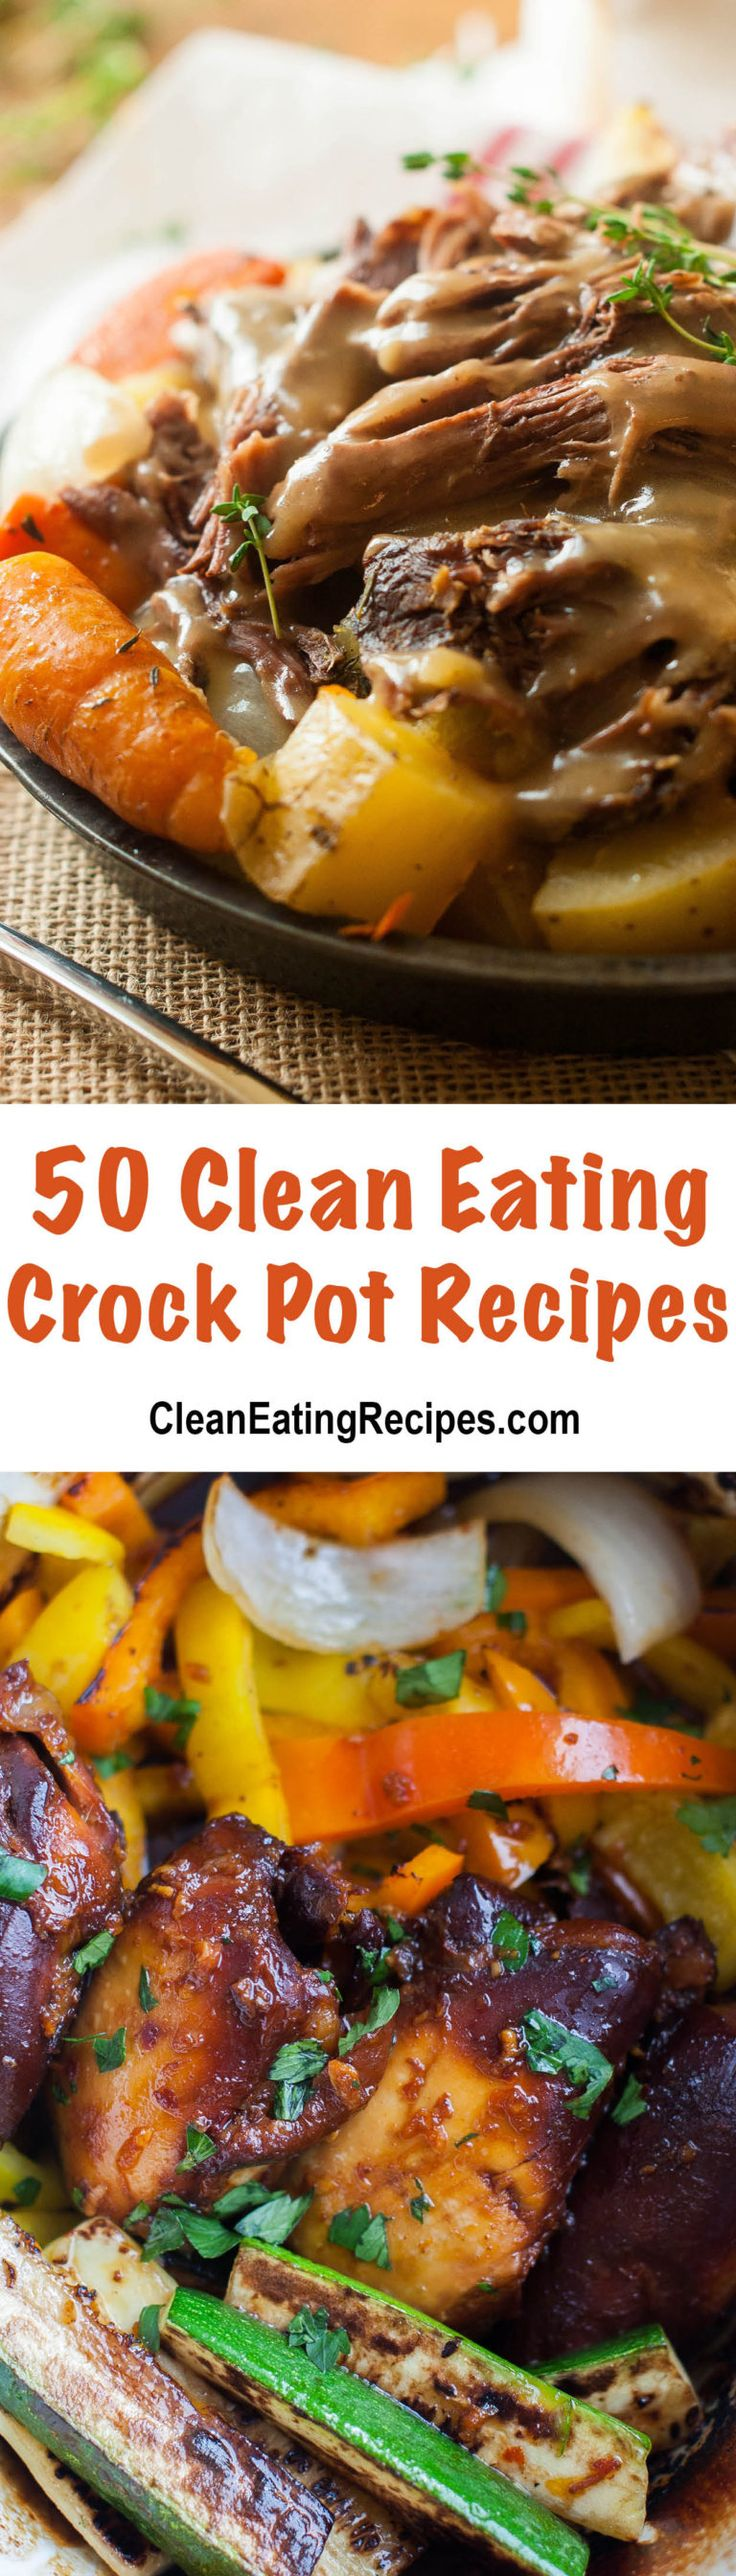 The 50 Best Clean Eating Crock Pot Recipes